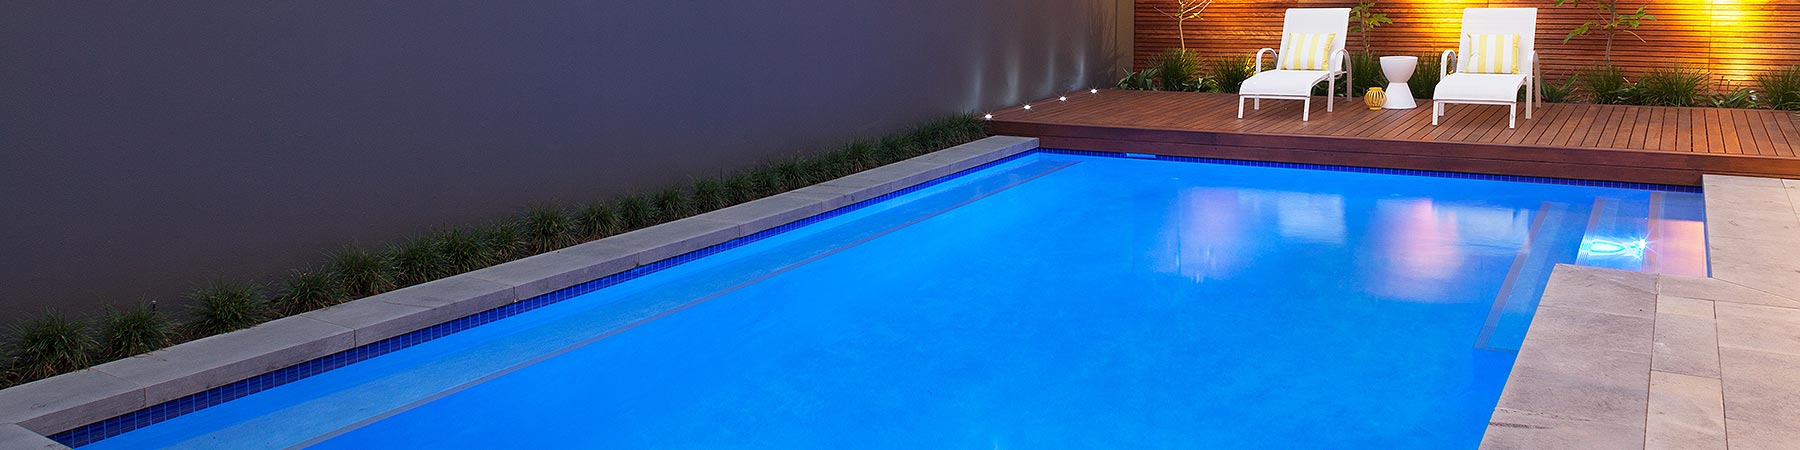 Swimming-Pool-Interior-Hawaii-Blue